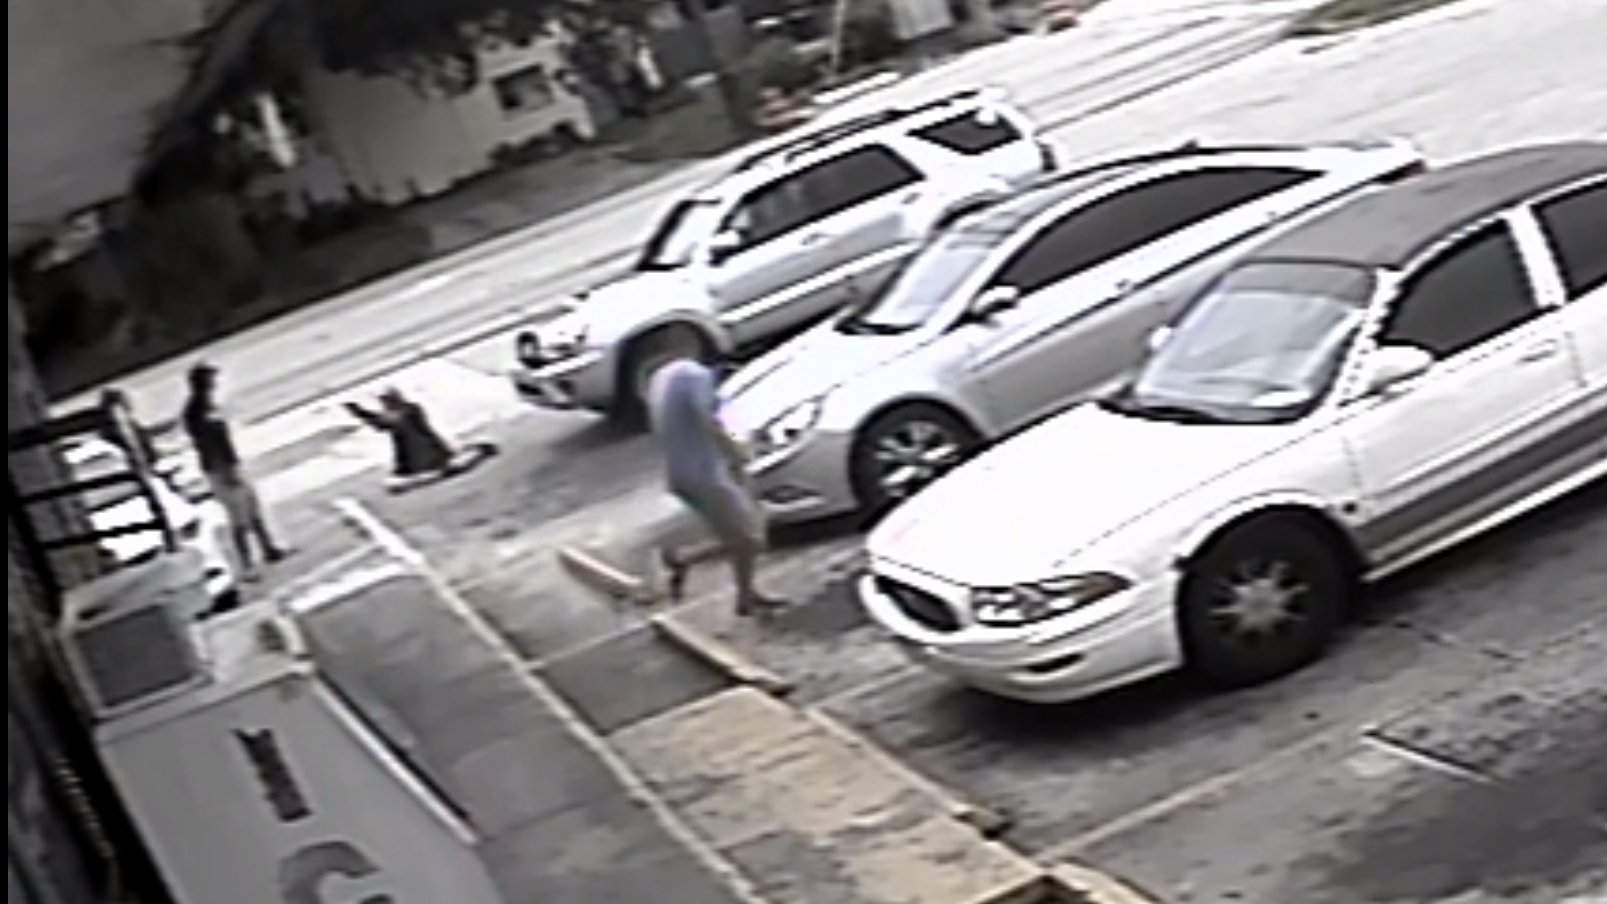 Millions have seen the video of Michael Drejka, 47, who shot dead Markis McGlockton, 28, after a brief confrontation over a parking lot in a Clearwater supermarket. Drejka is being tried for manslaughter [Pinellas County Sheriff's Office]